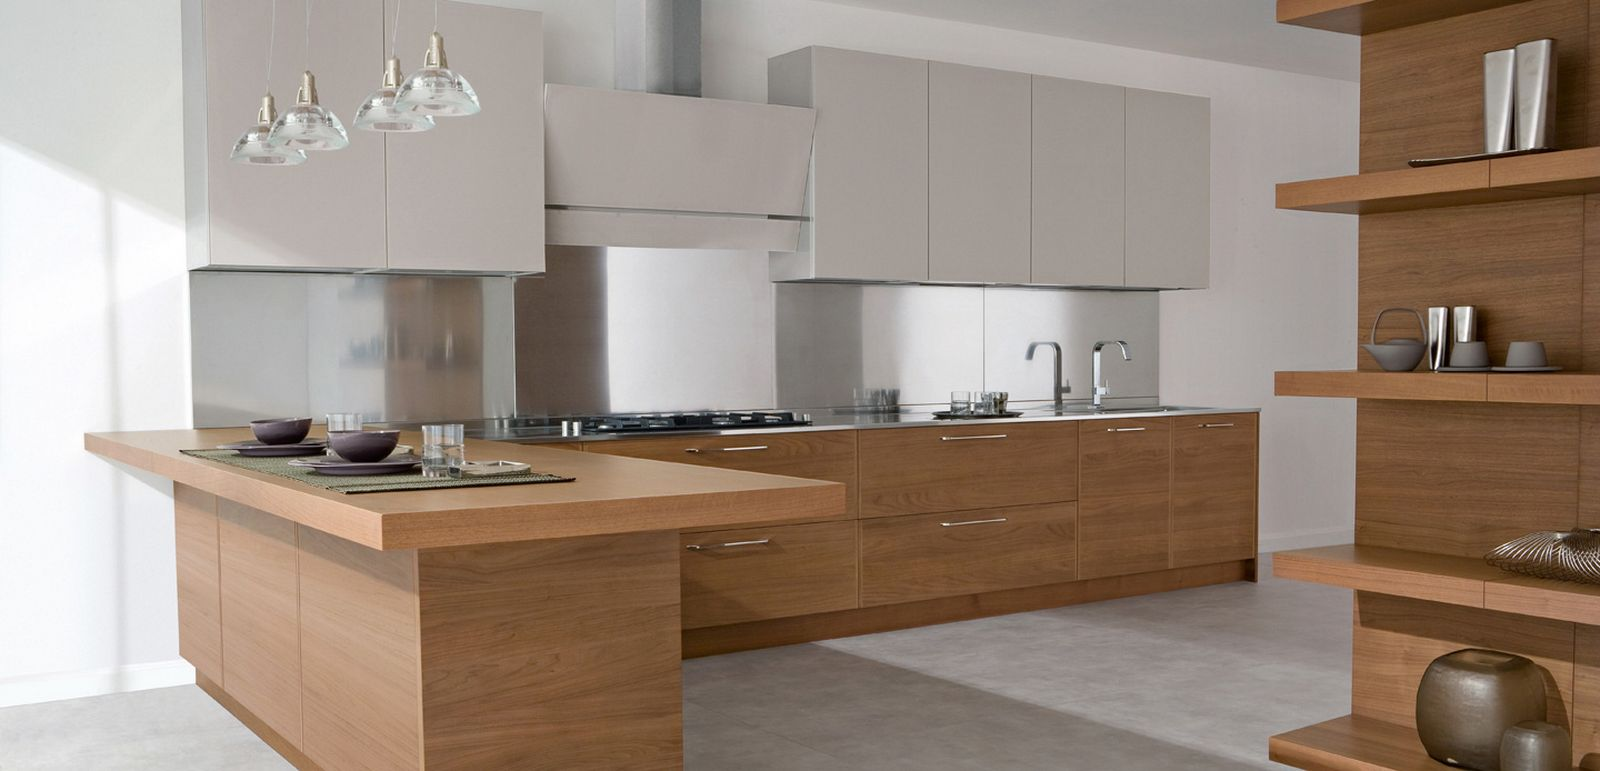 Simple but hot trends of modern kitchen homesfeed for Modern kitchen looks